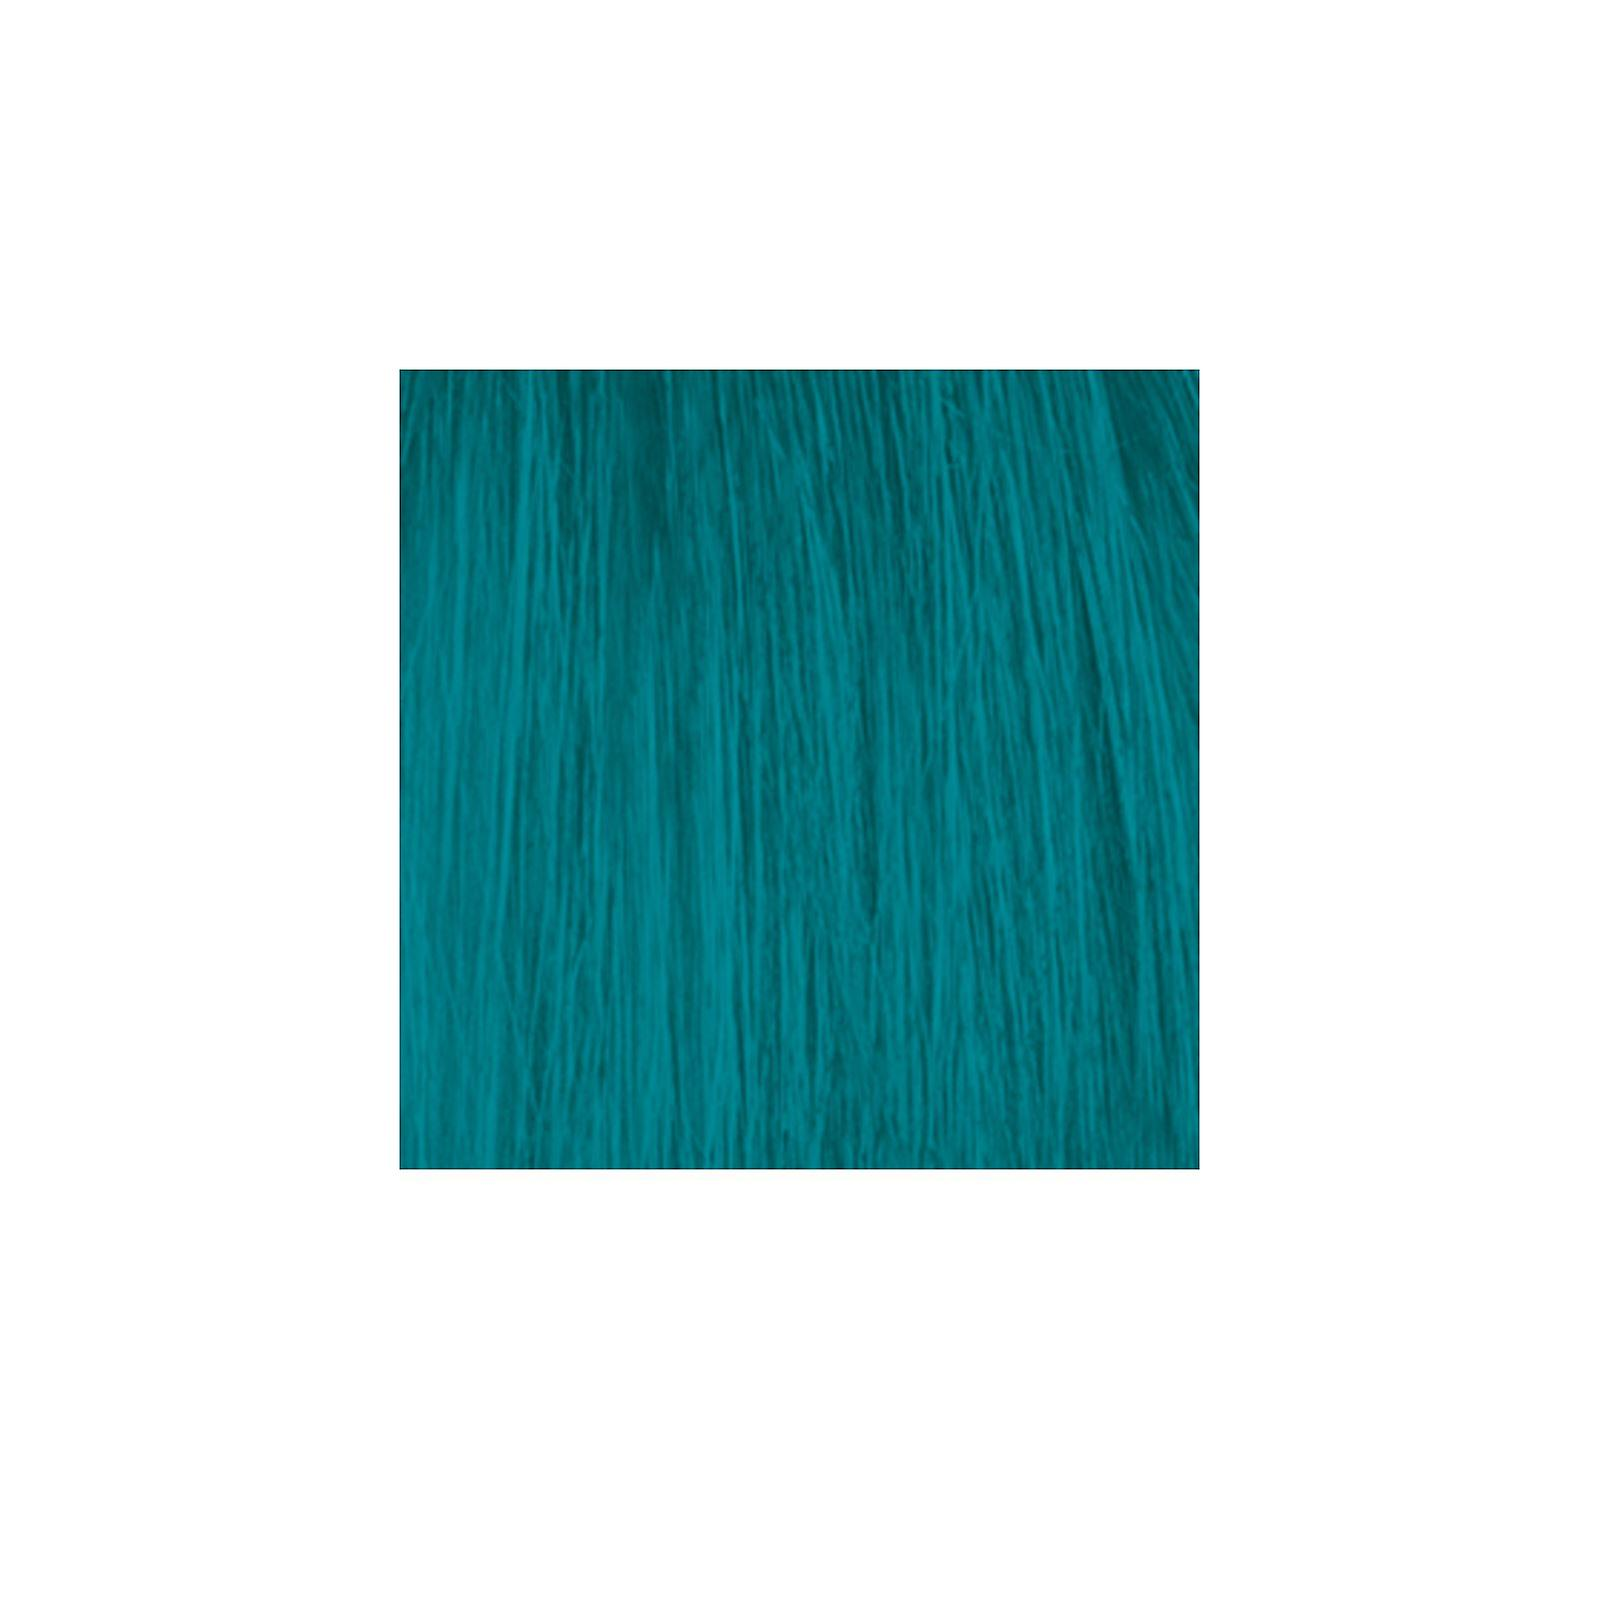 Stargazer Hair Dye -  Uv Turquoise X 4 With Tint Brush